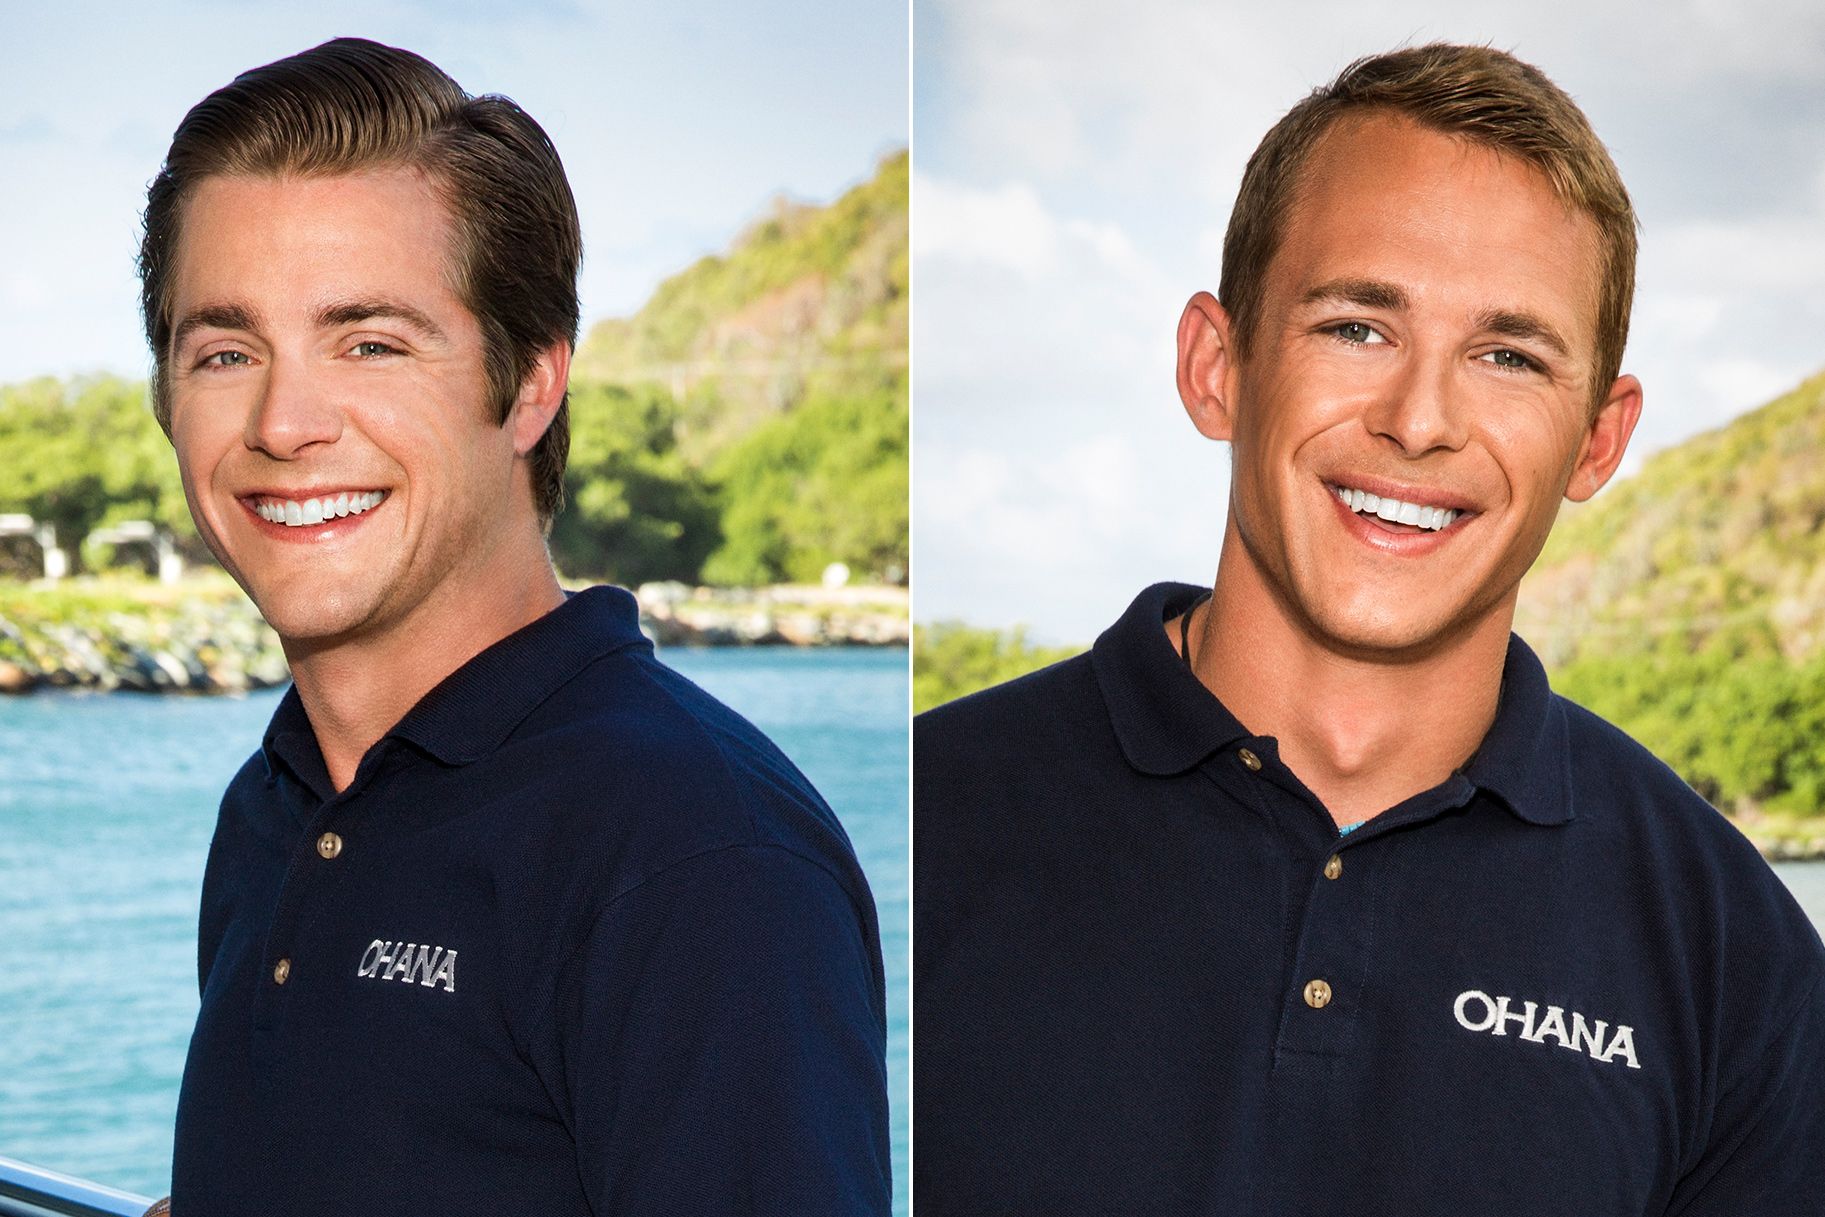 kelley and jennice below deck dating